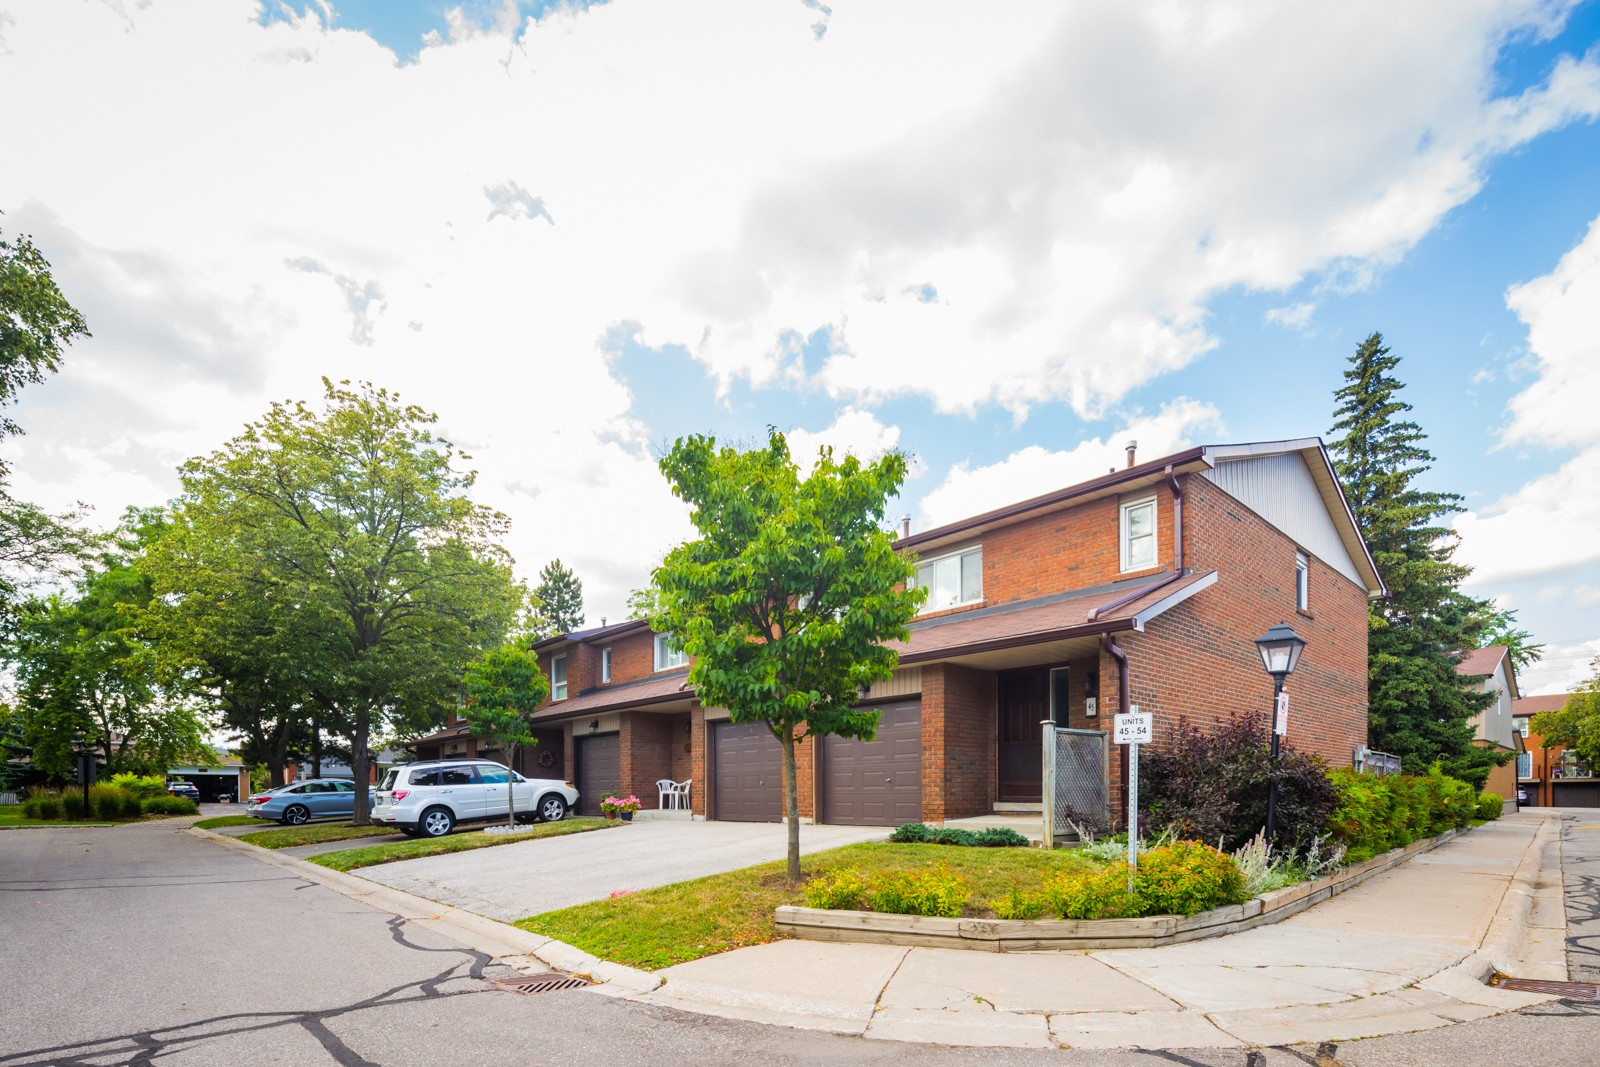 725 Vermouth Avenue Townhouses at 725 Vermouth Ave, Mississauga 1